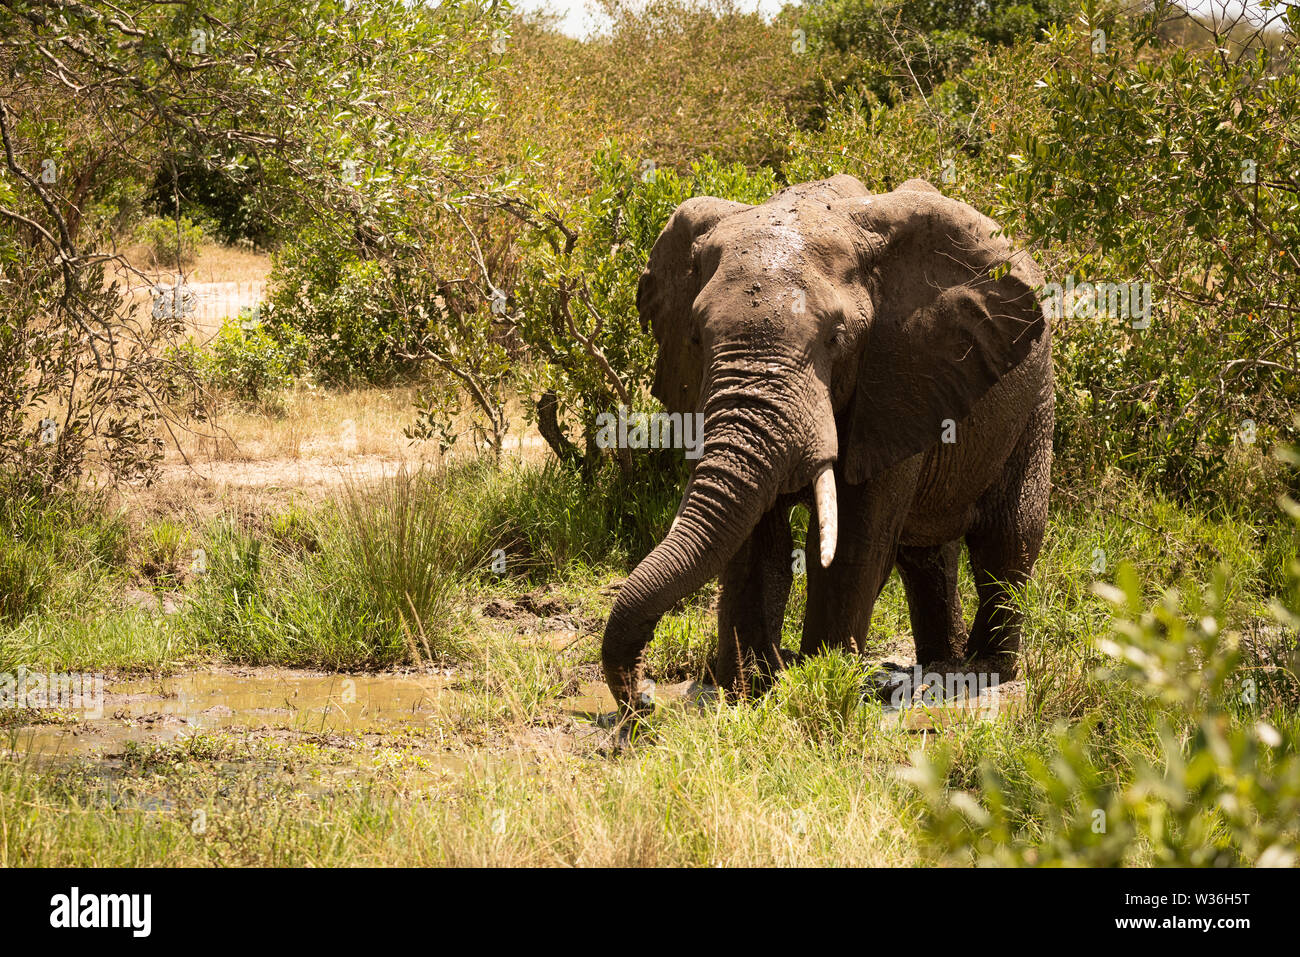 African bush elephant drinks from muddy pool - Stock Image